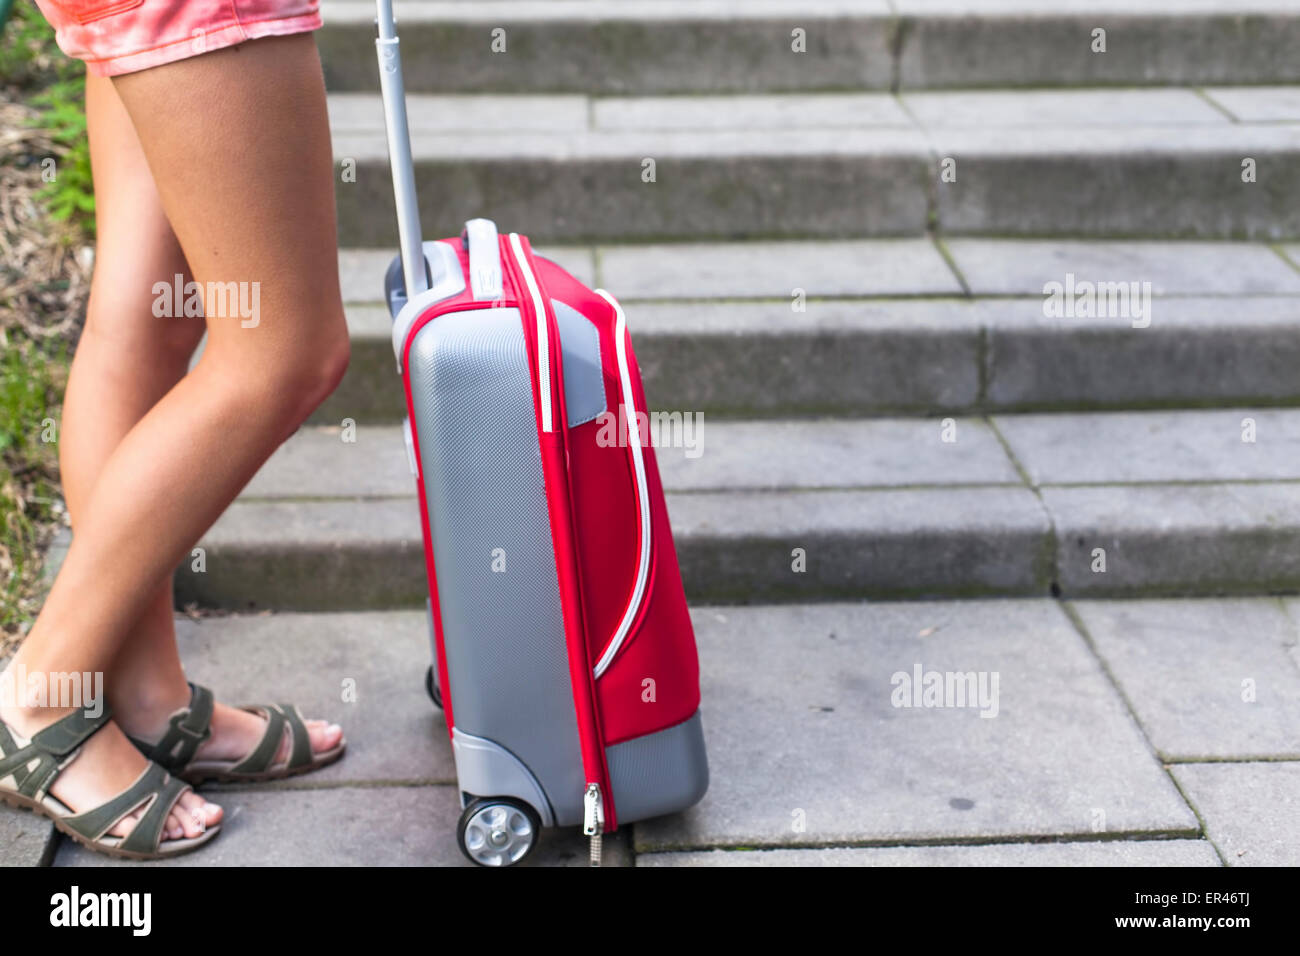 Feet of a young girl near red travel suitcase. - Stock Image